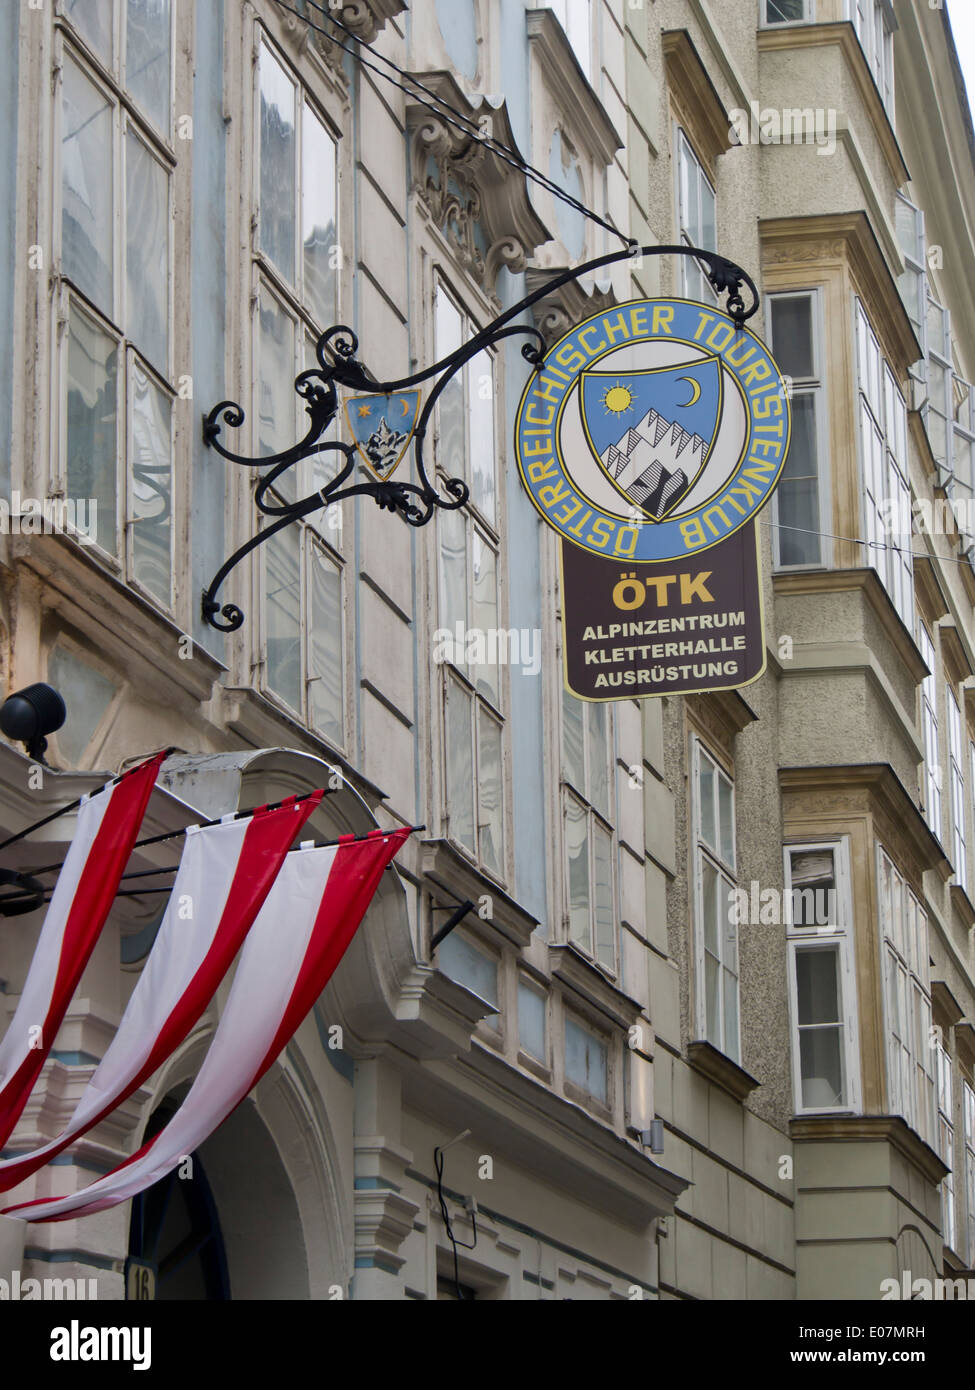 Old sign outside the Österrechischer Touristen Klub in Vienna Austria, a hiking and mountaineering association - Stock Image